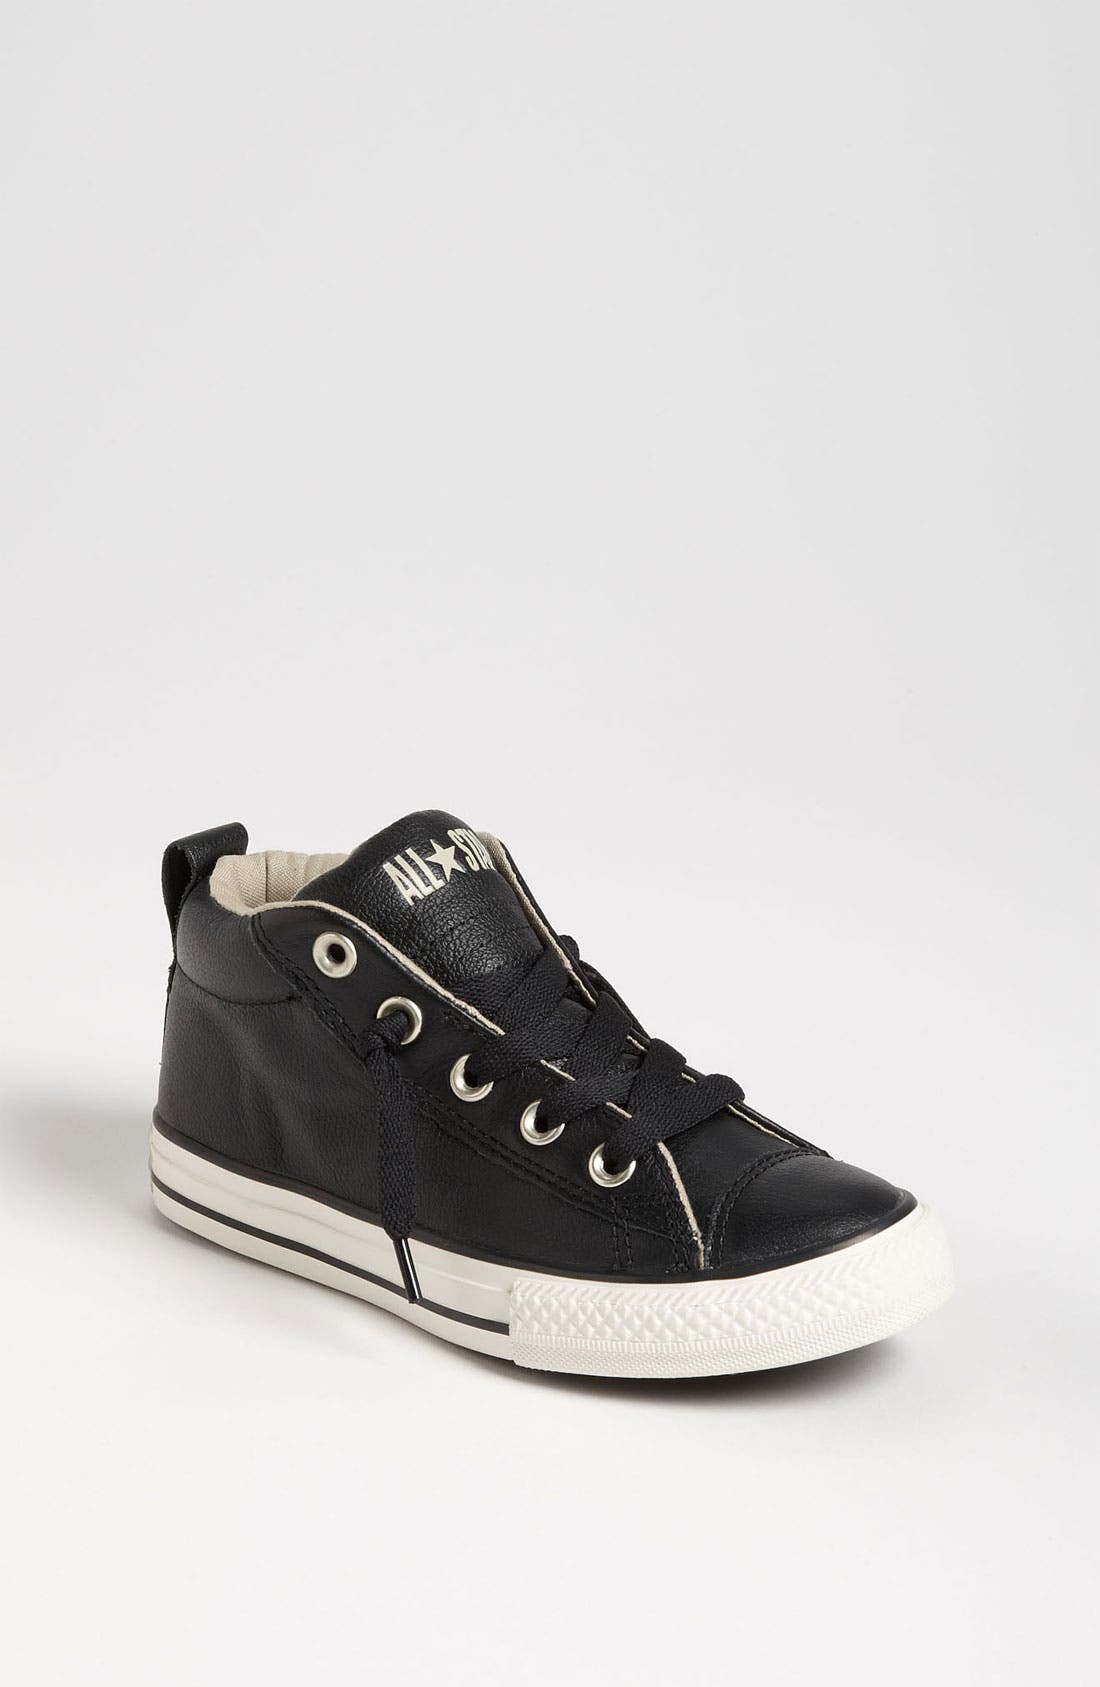 Alternate Image 1 Selected - Converse 'Street' Mid Sneaker (Toddler, Little Kid & Big Kid)